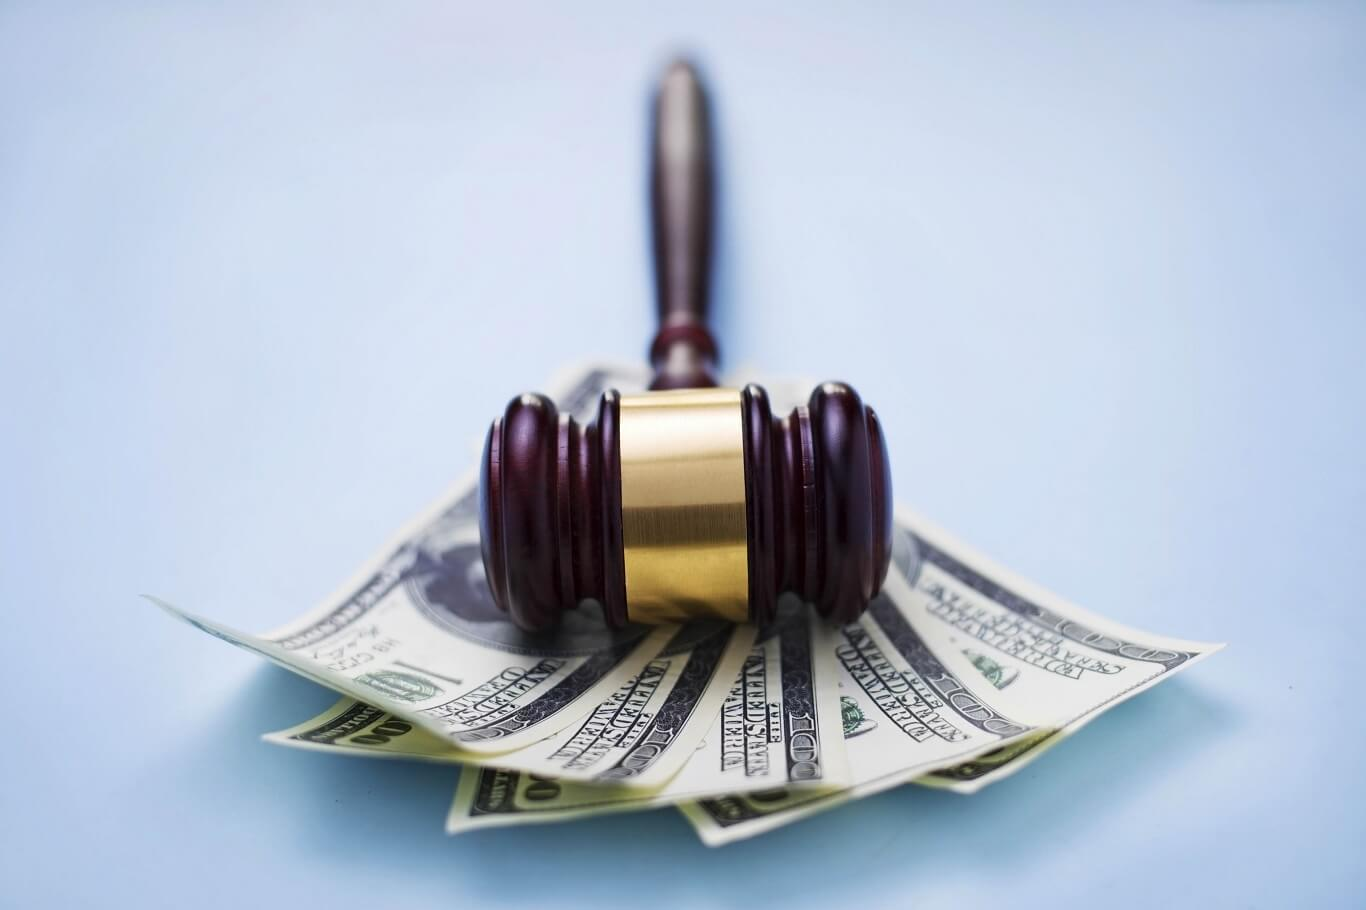 are attorney fees tax deductible